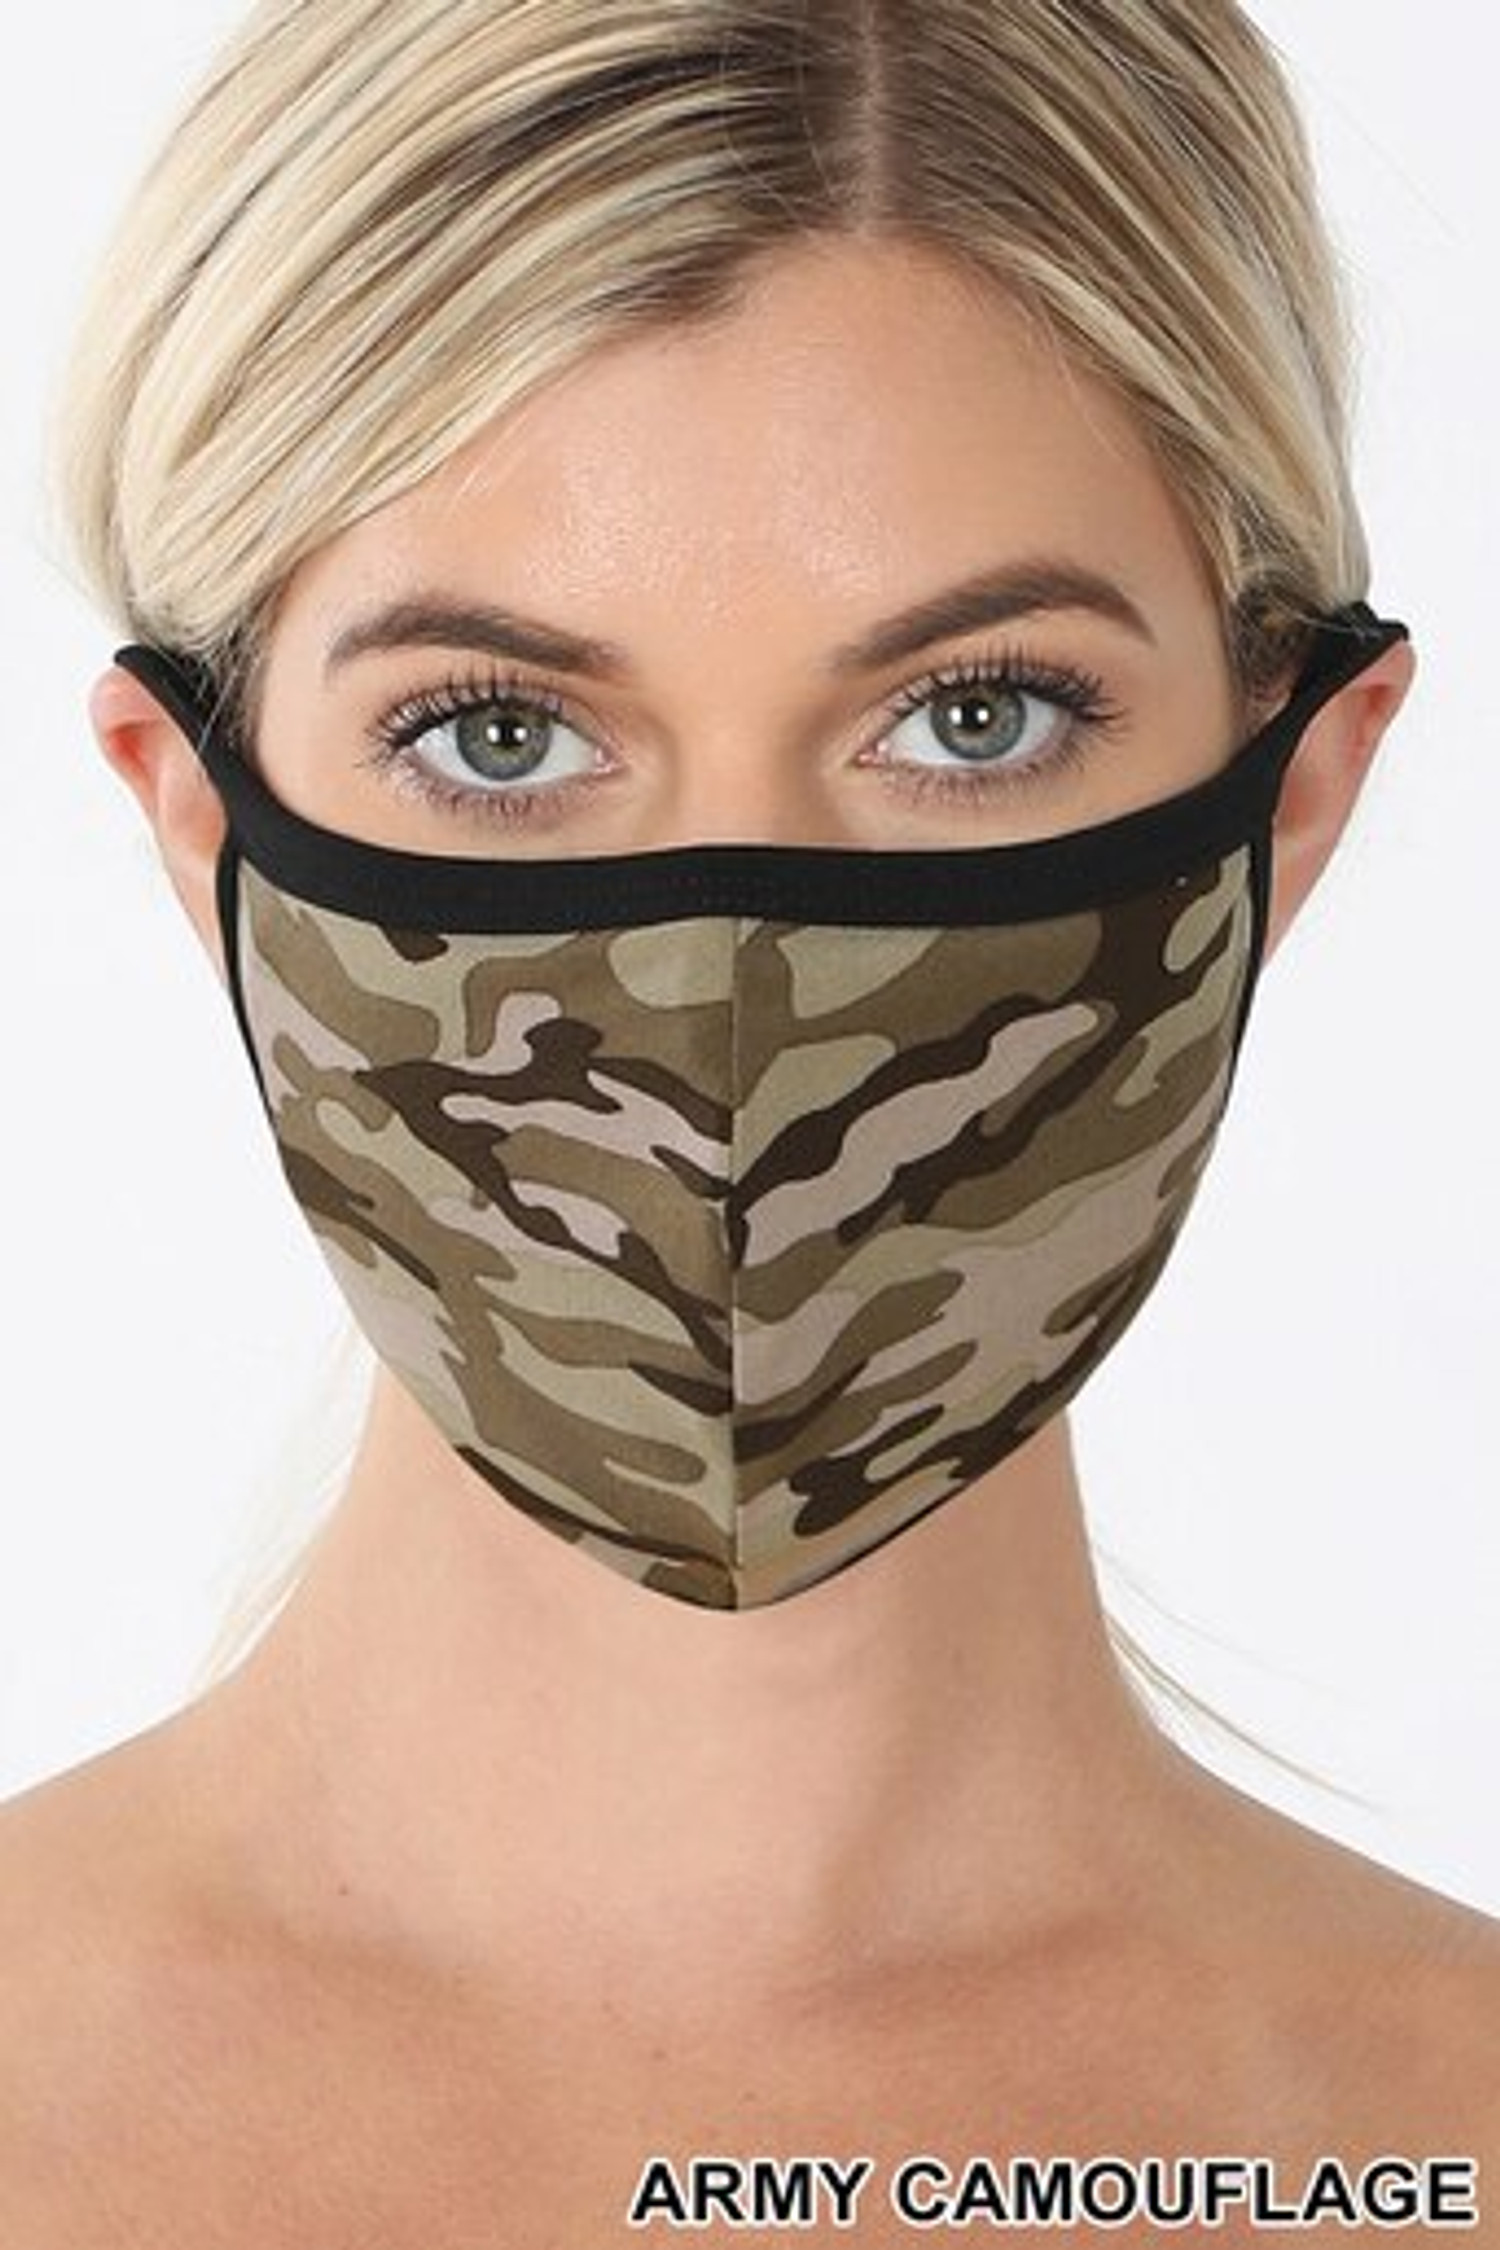 Army Camouflage Face Mask - Imported